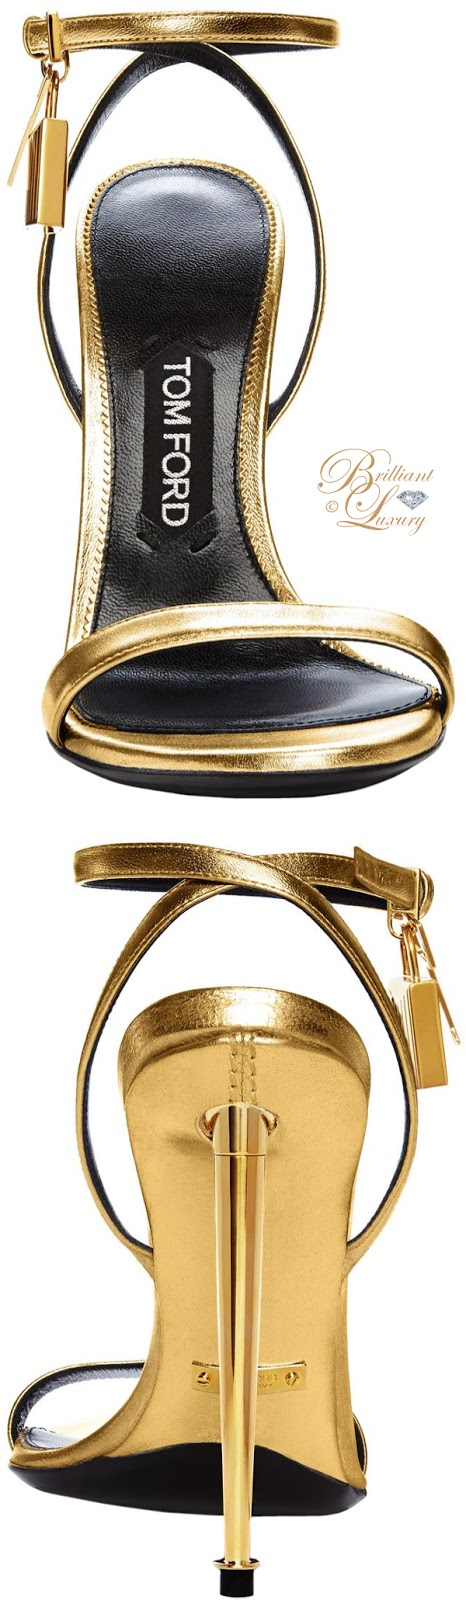 Brilliant Luxury ♦ Tom Ford Napa strap evening sandals